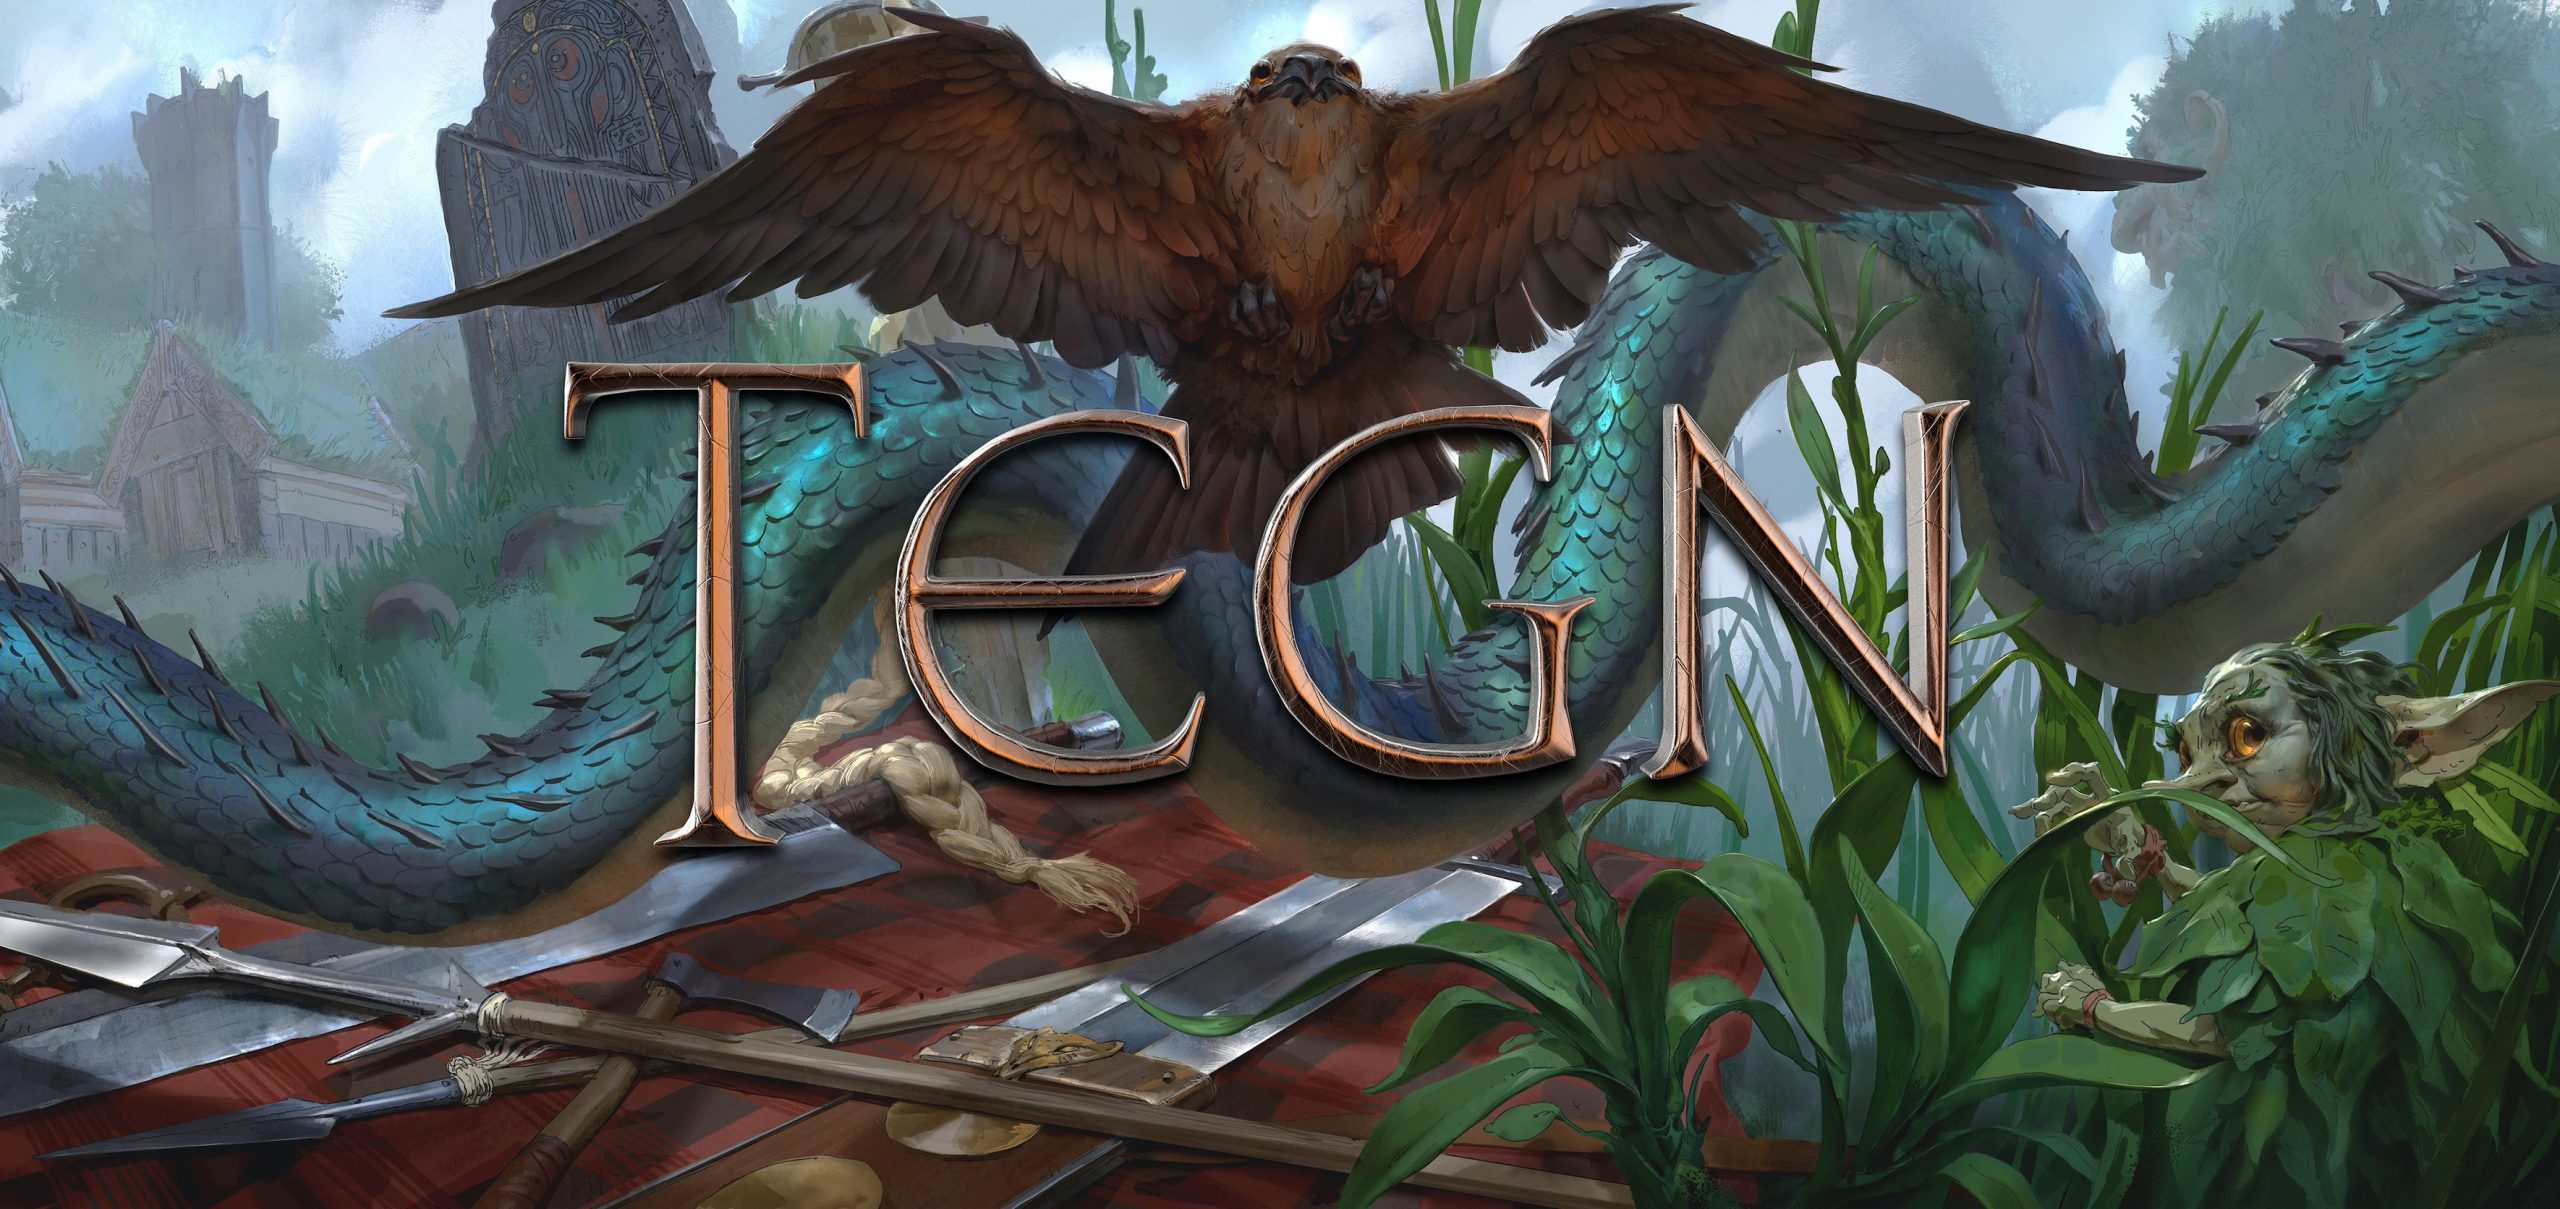 """A banner with an eagle, serpent, and gnome-like creature that says """"TEGN"""""""